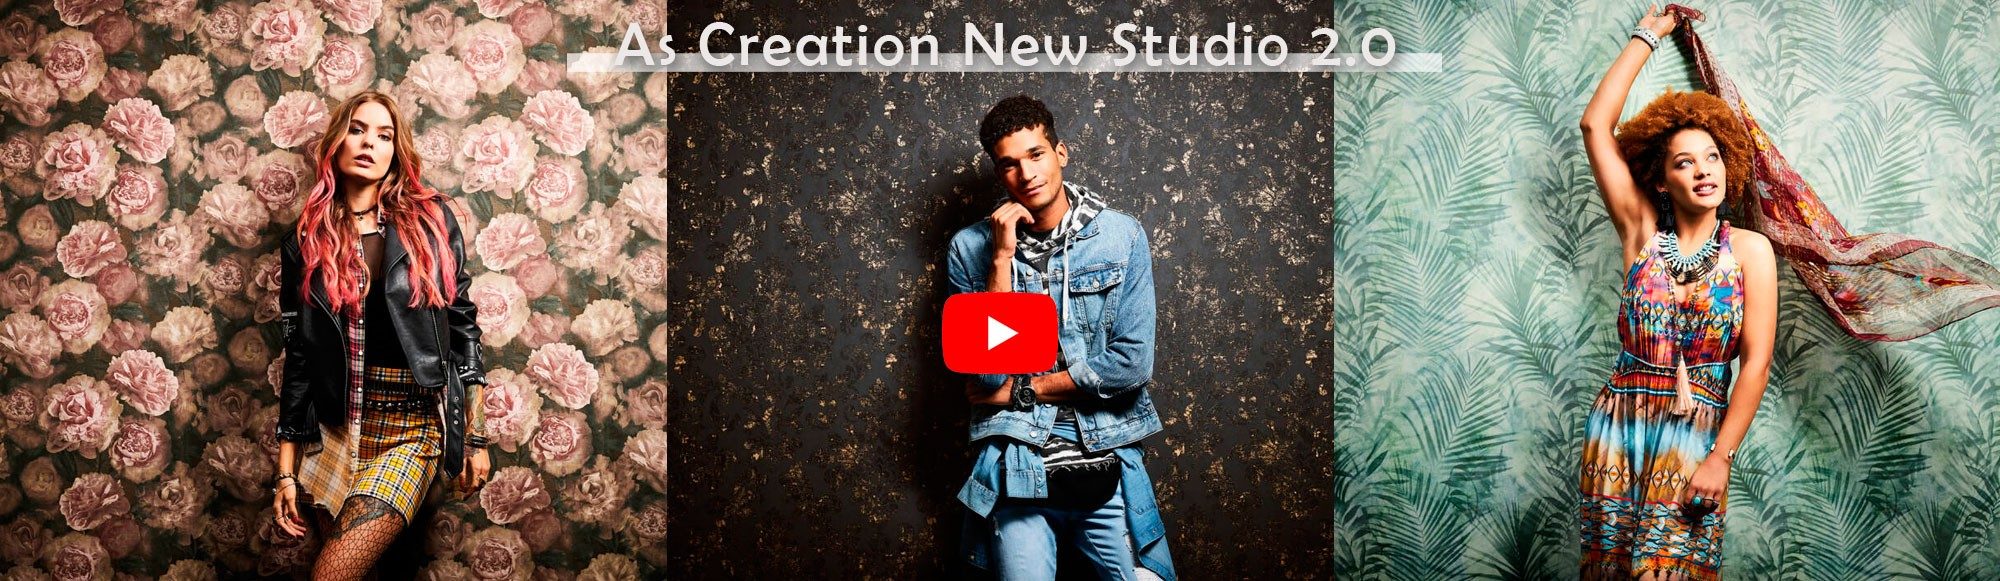 As Creation New Studio 2.0 wallpaper